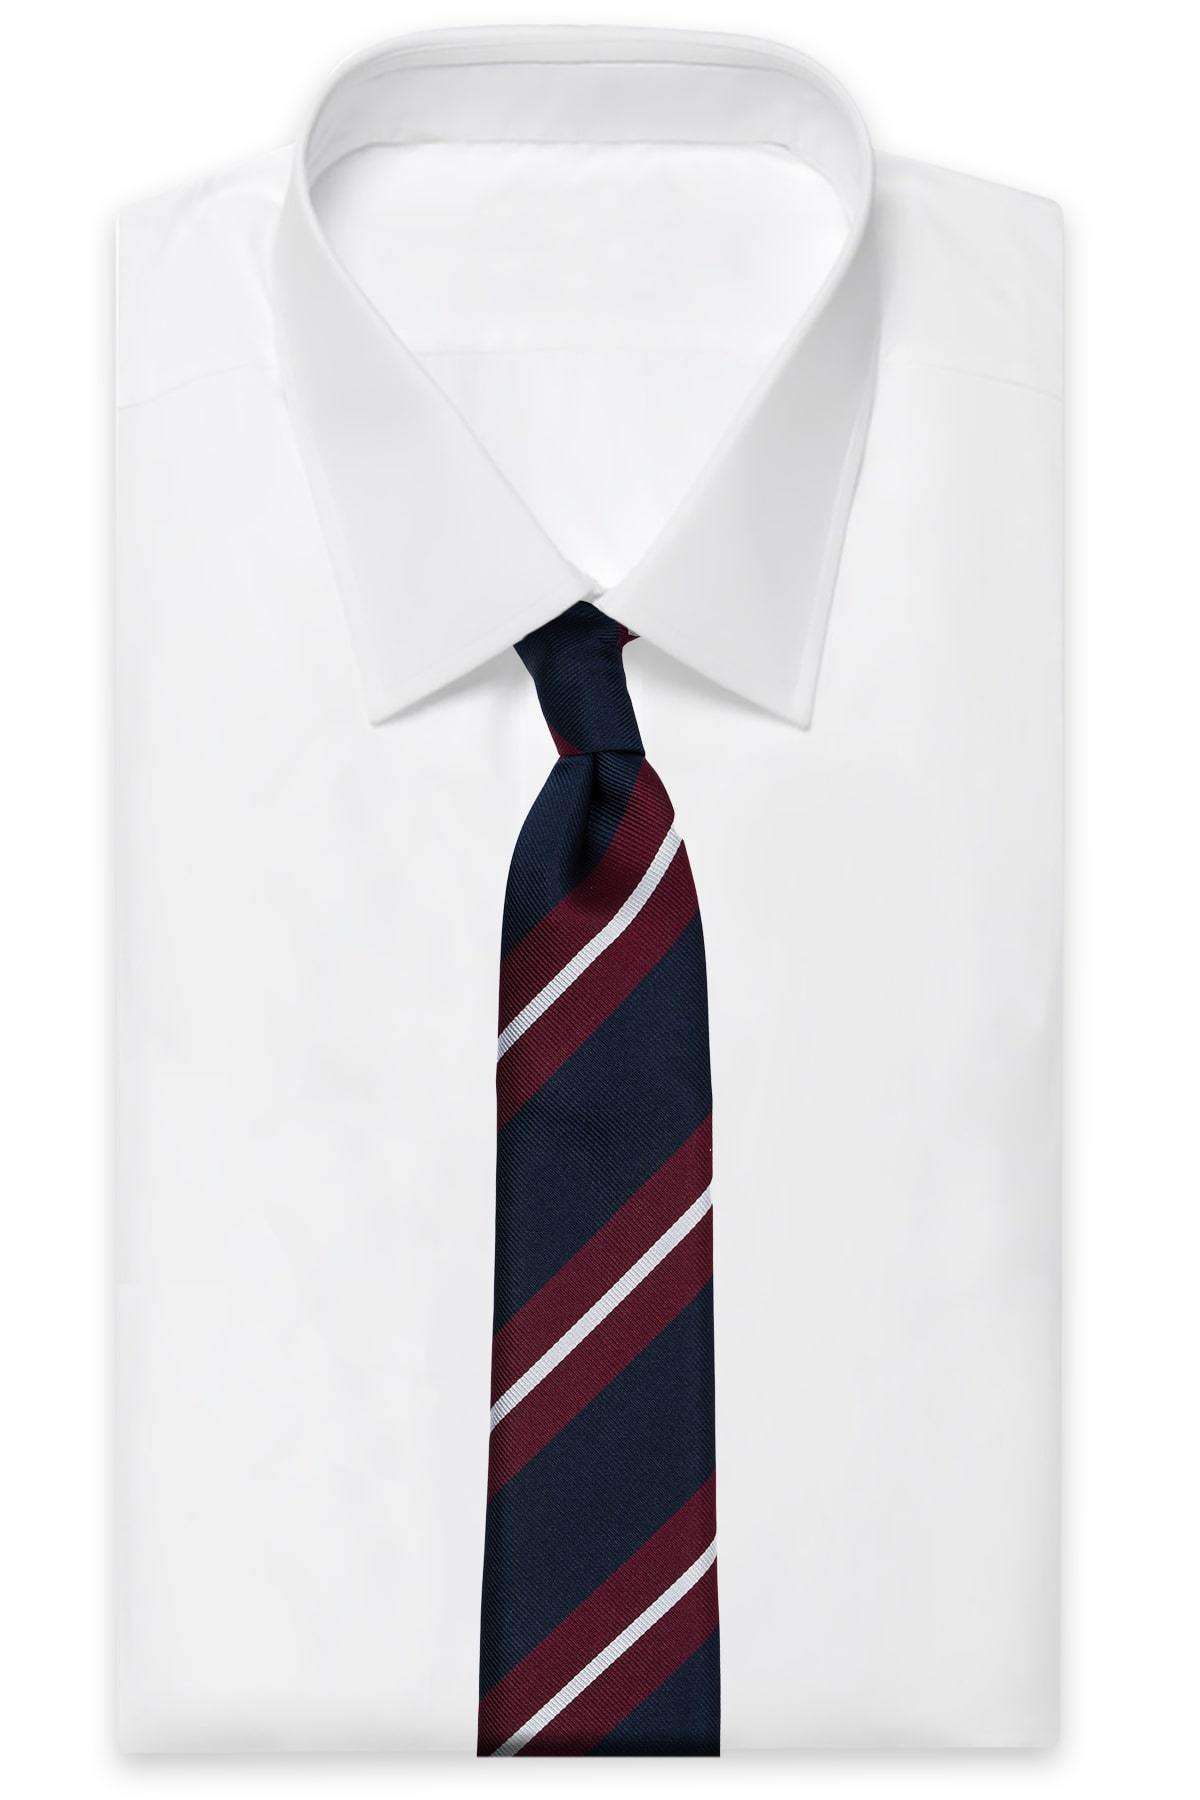 AN IVY Slips L2 x AN IVY Regiment Tie